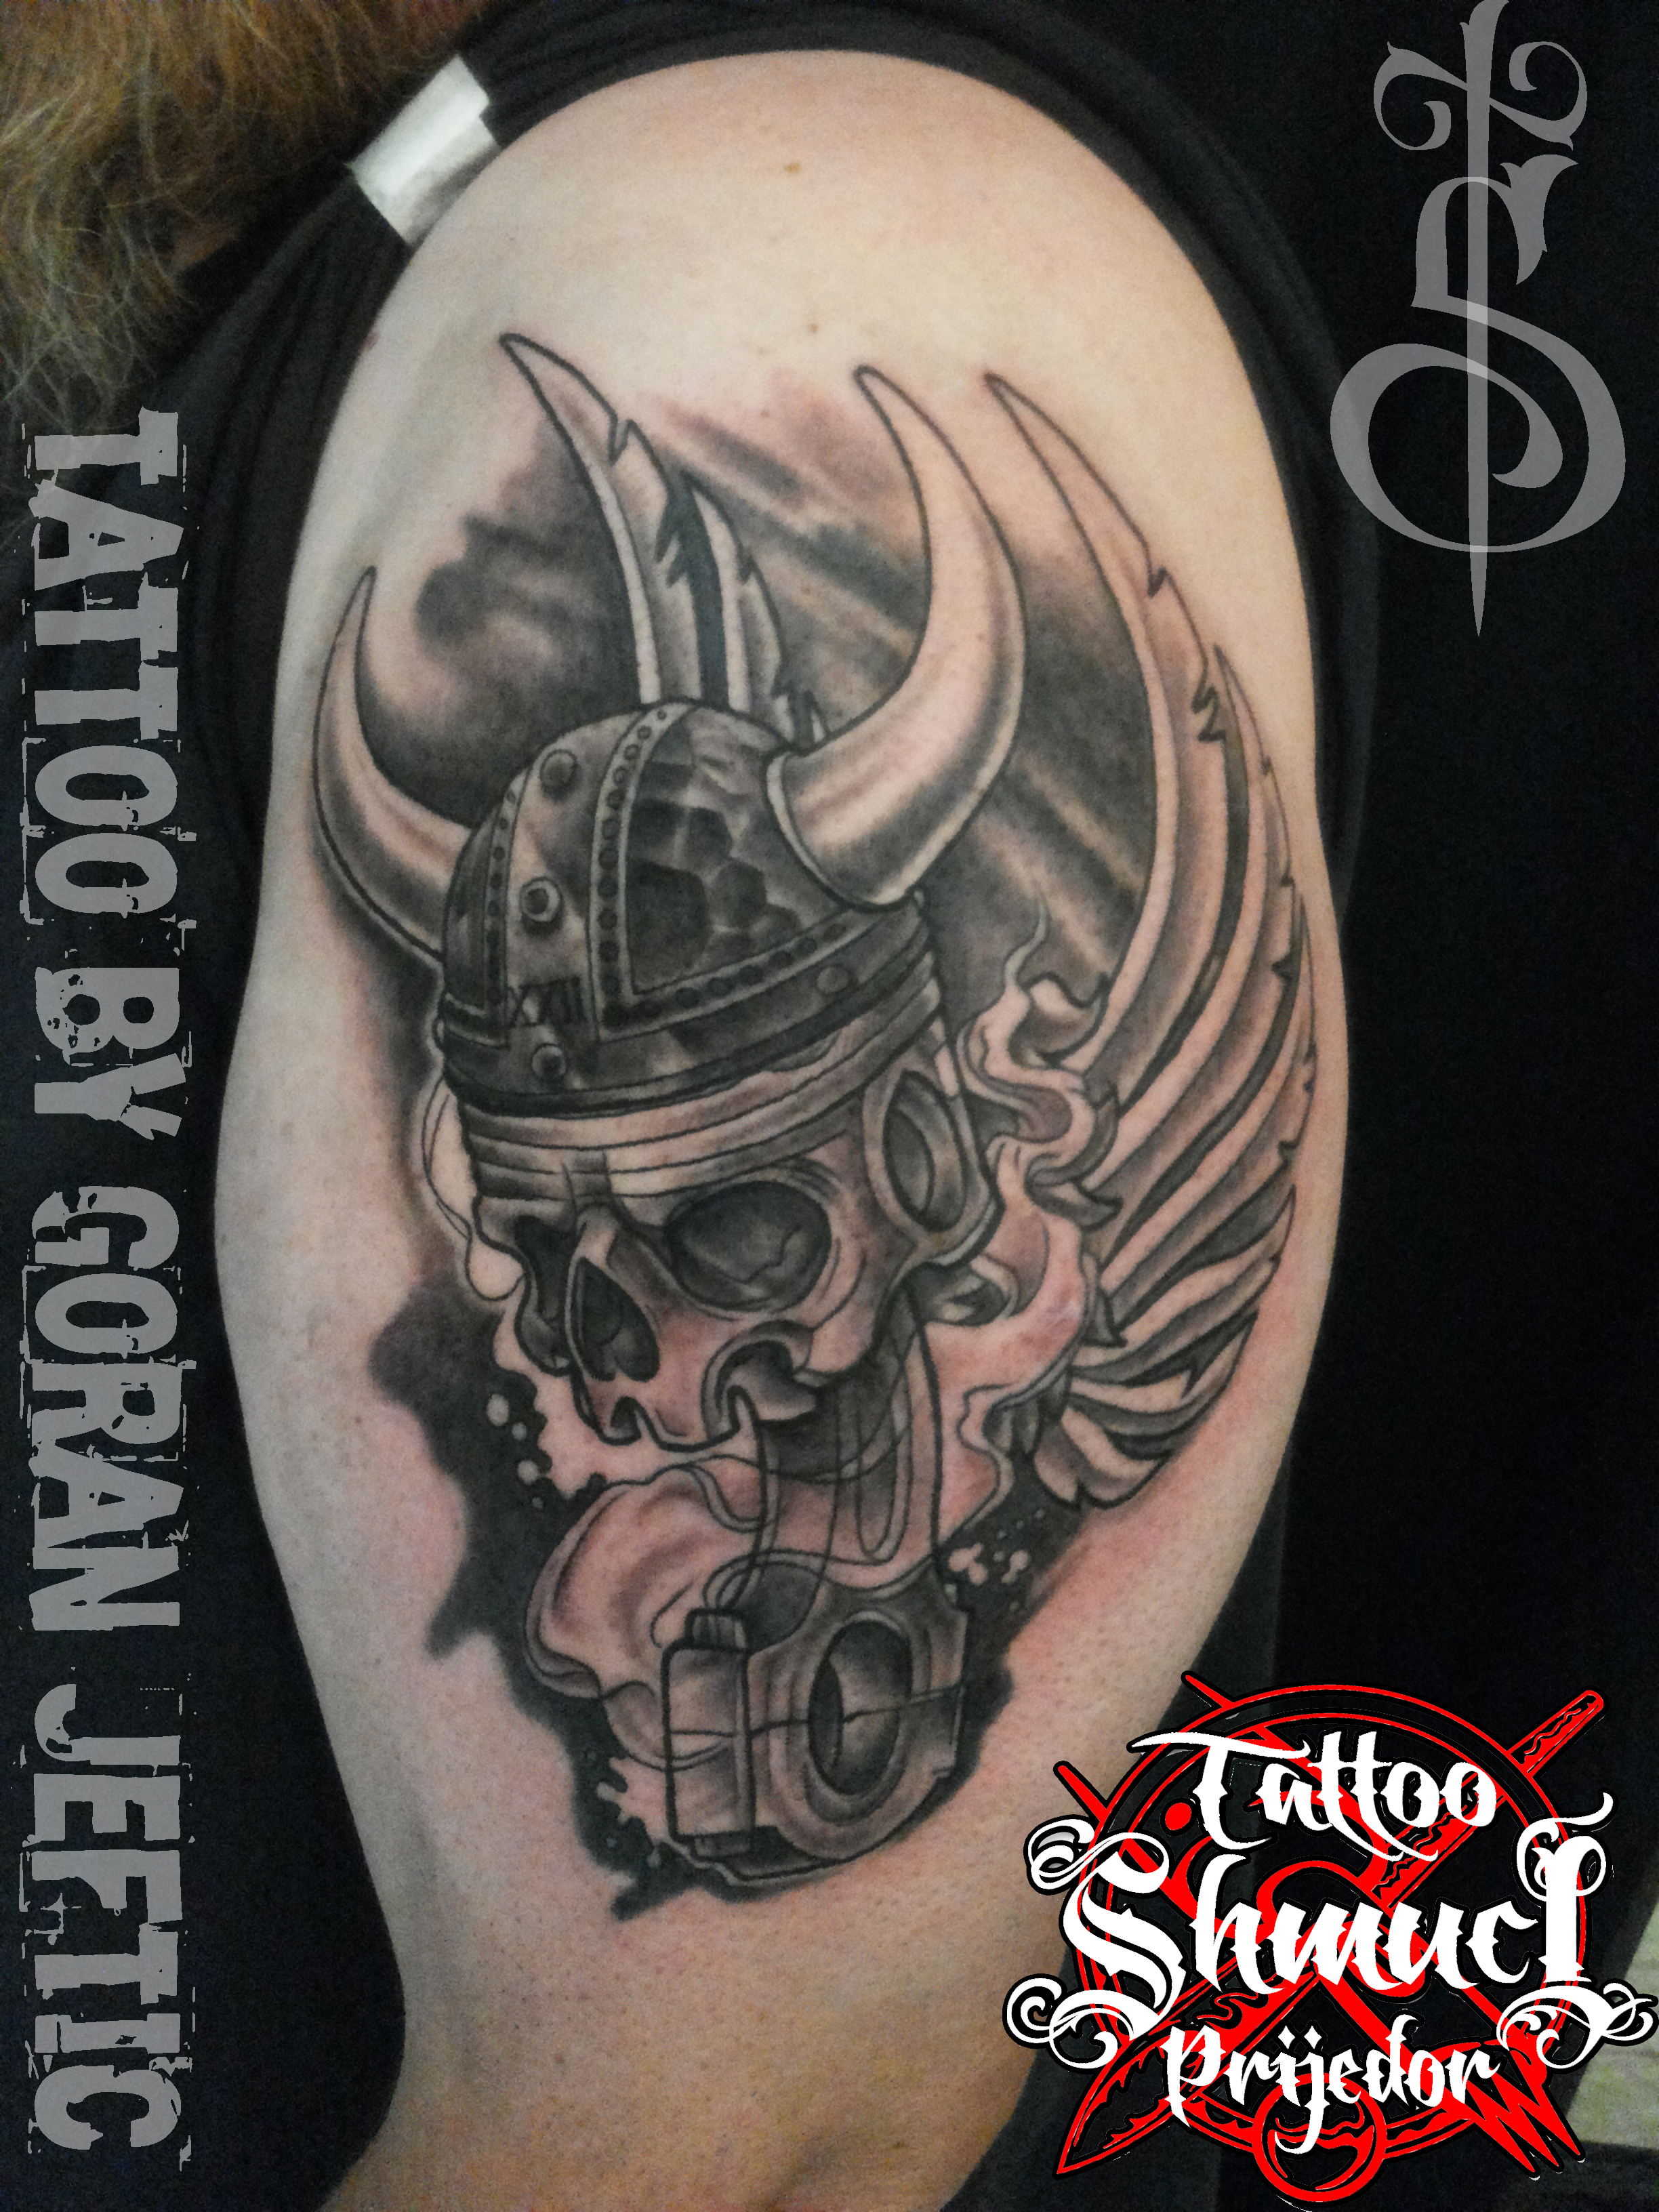 Goran jeftic certified artist for Indian motorcycle tattoo